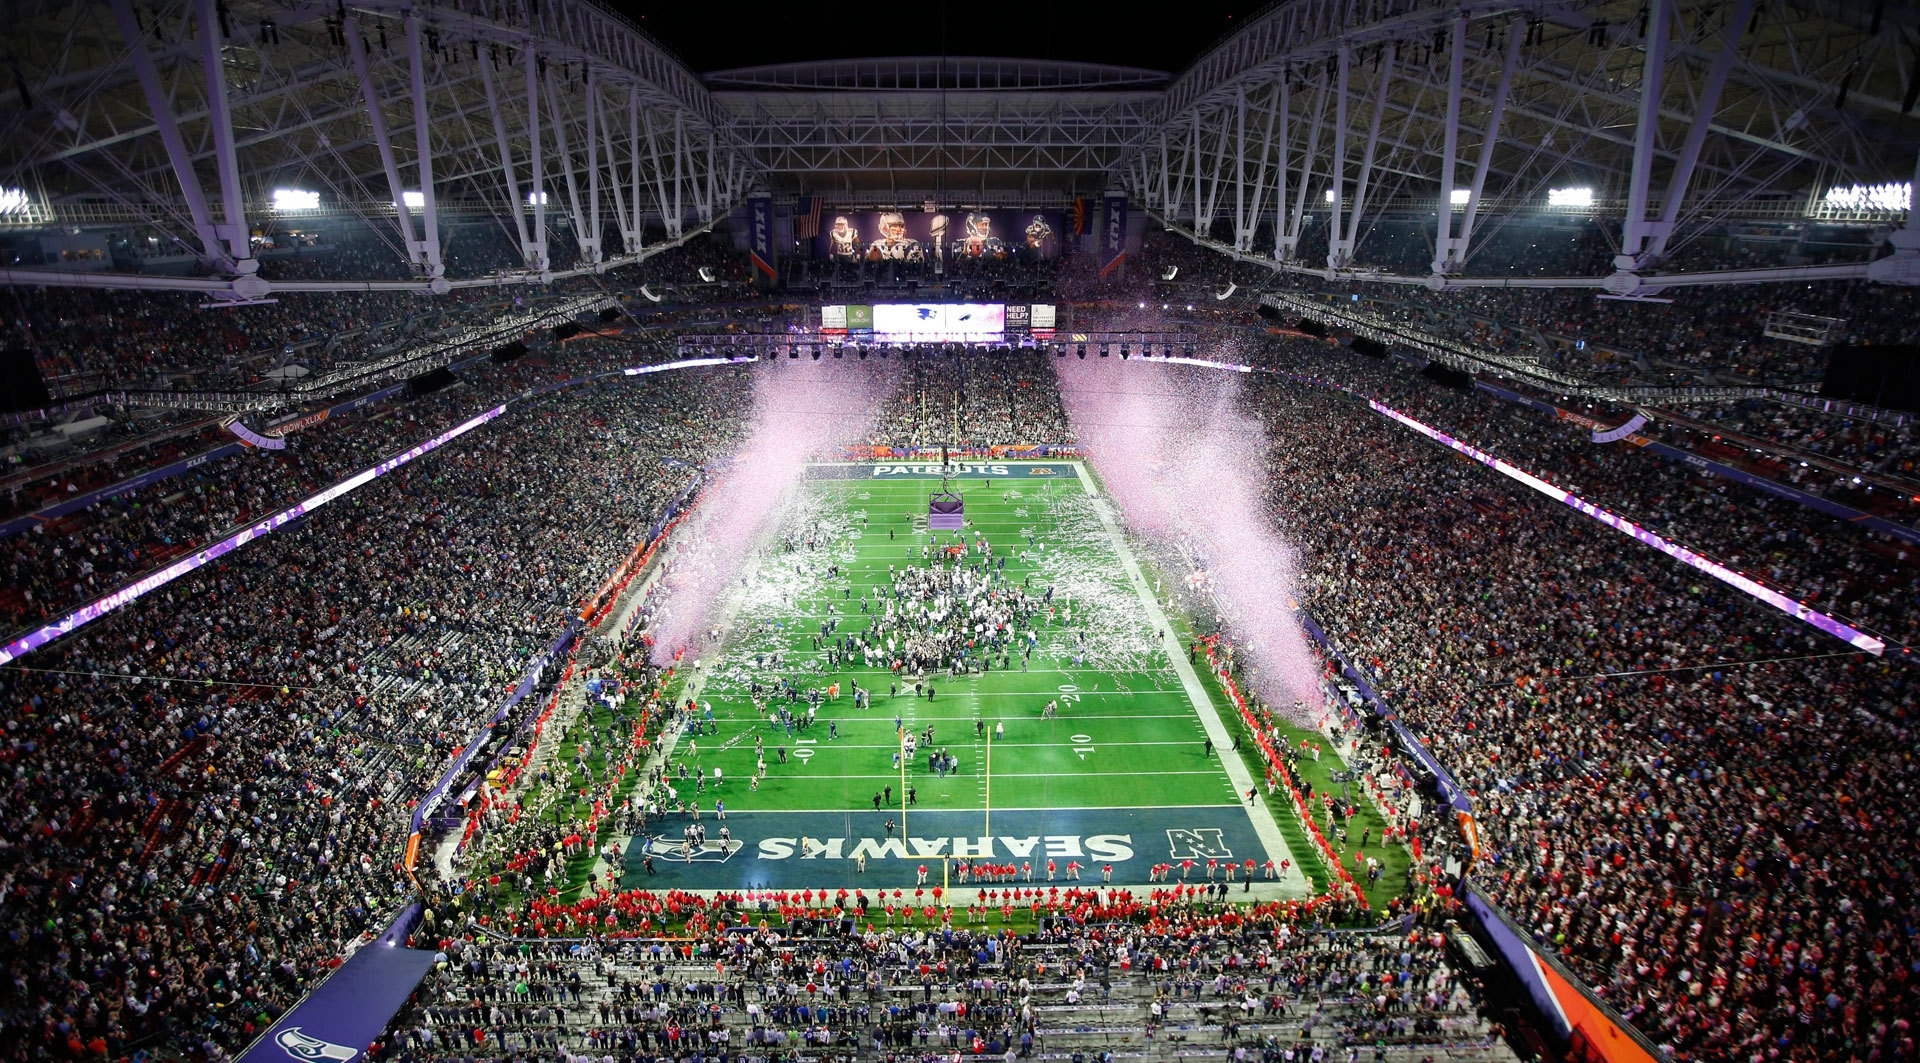 Super Bowl 2020: When, Where, What To Do & More Faqs intended for Seating Capacity At Super Bowl 2019